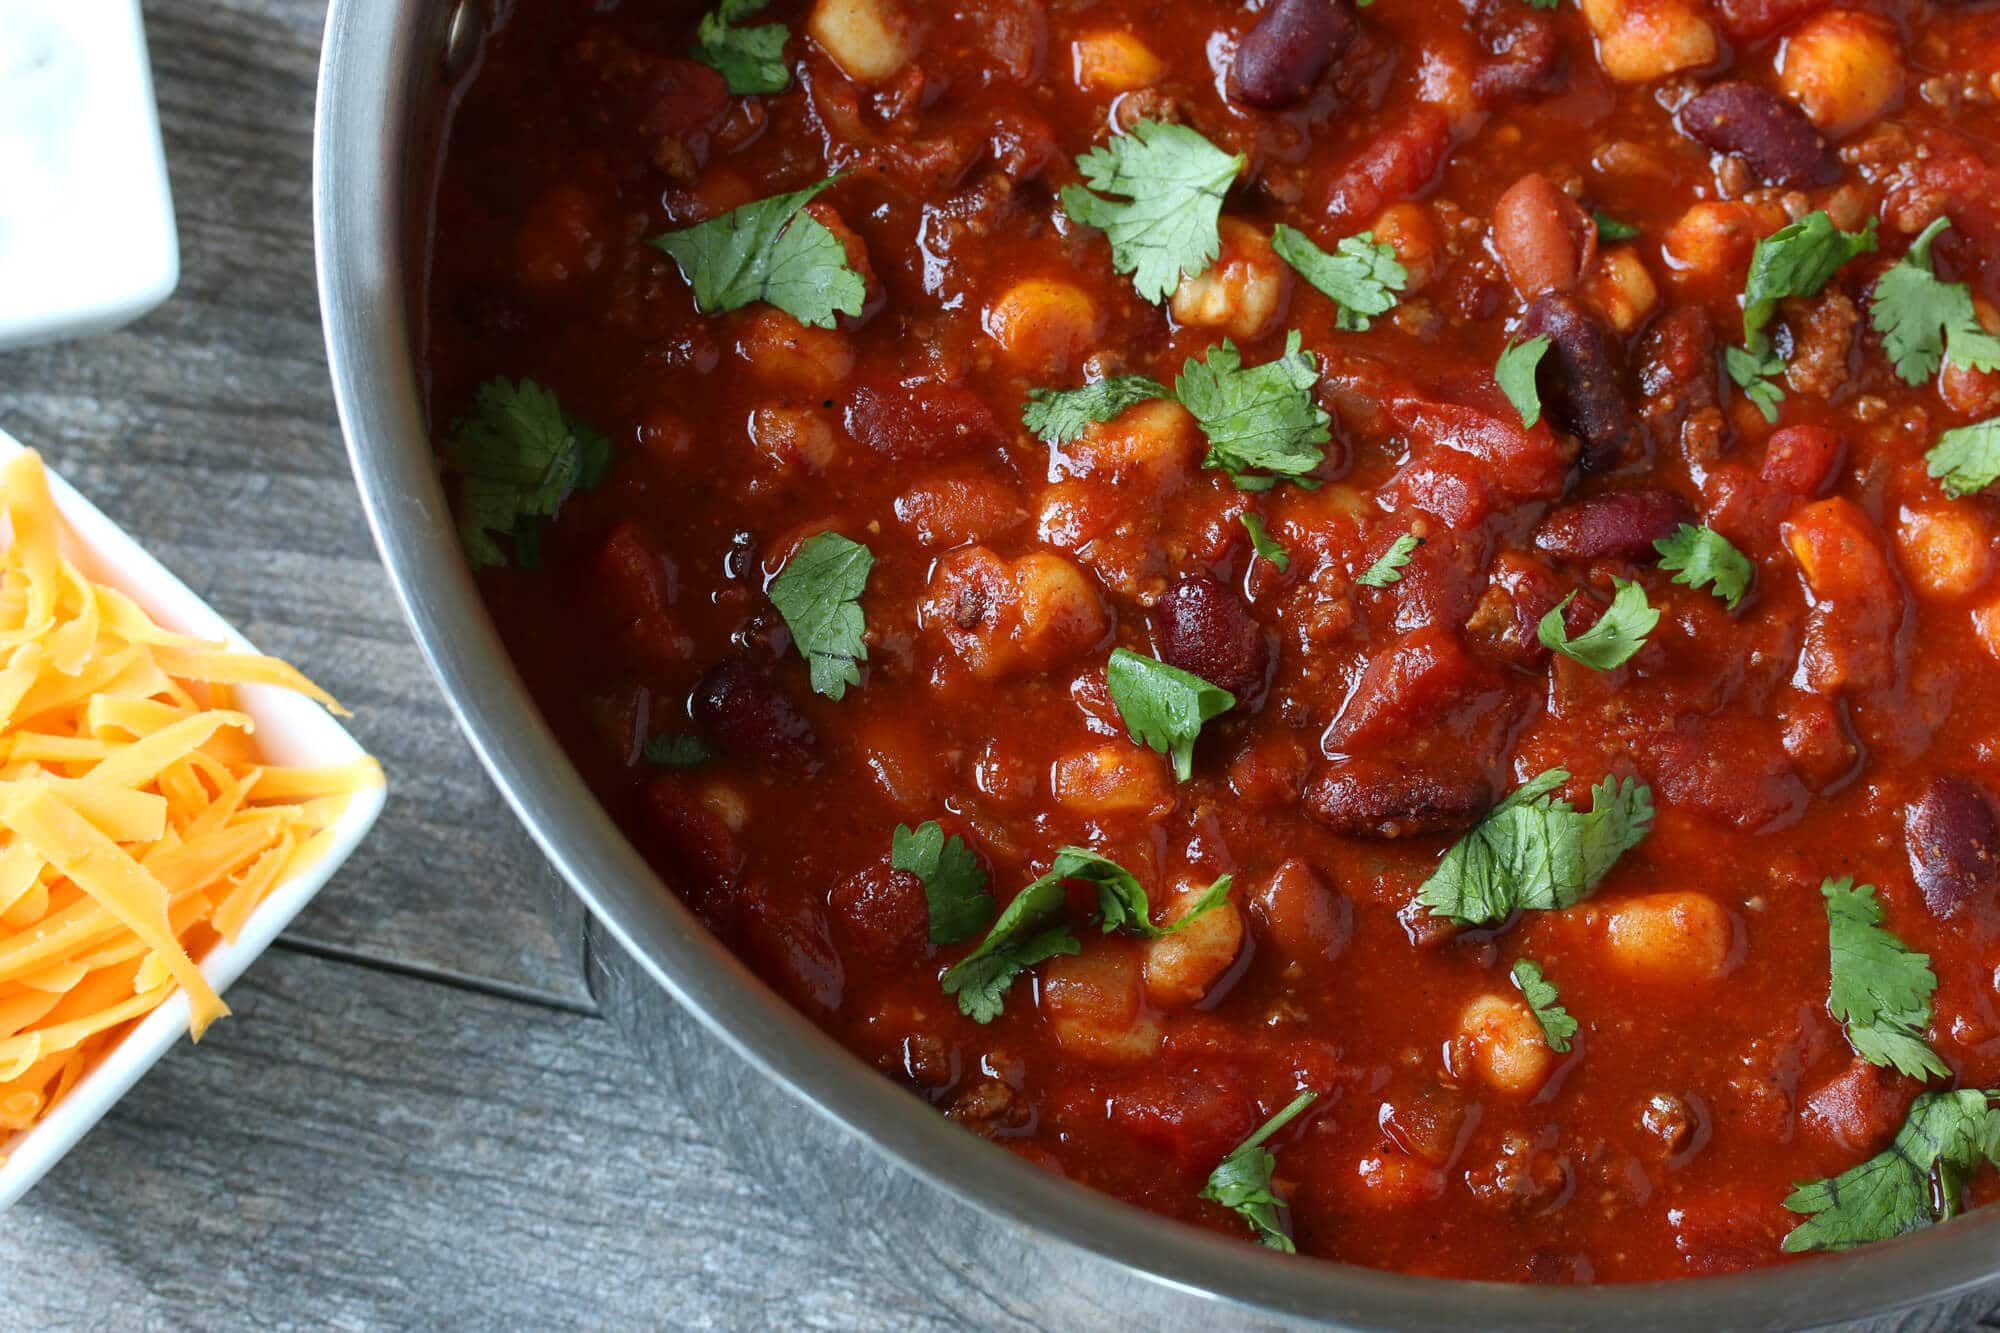 spicy chipotle chili with hominy